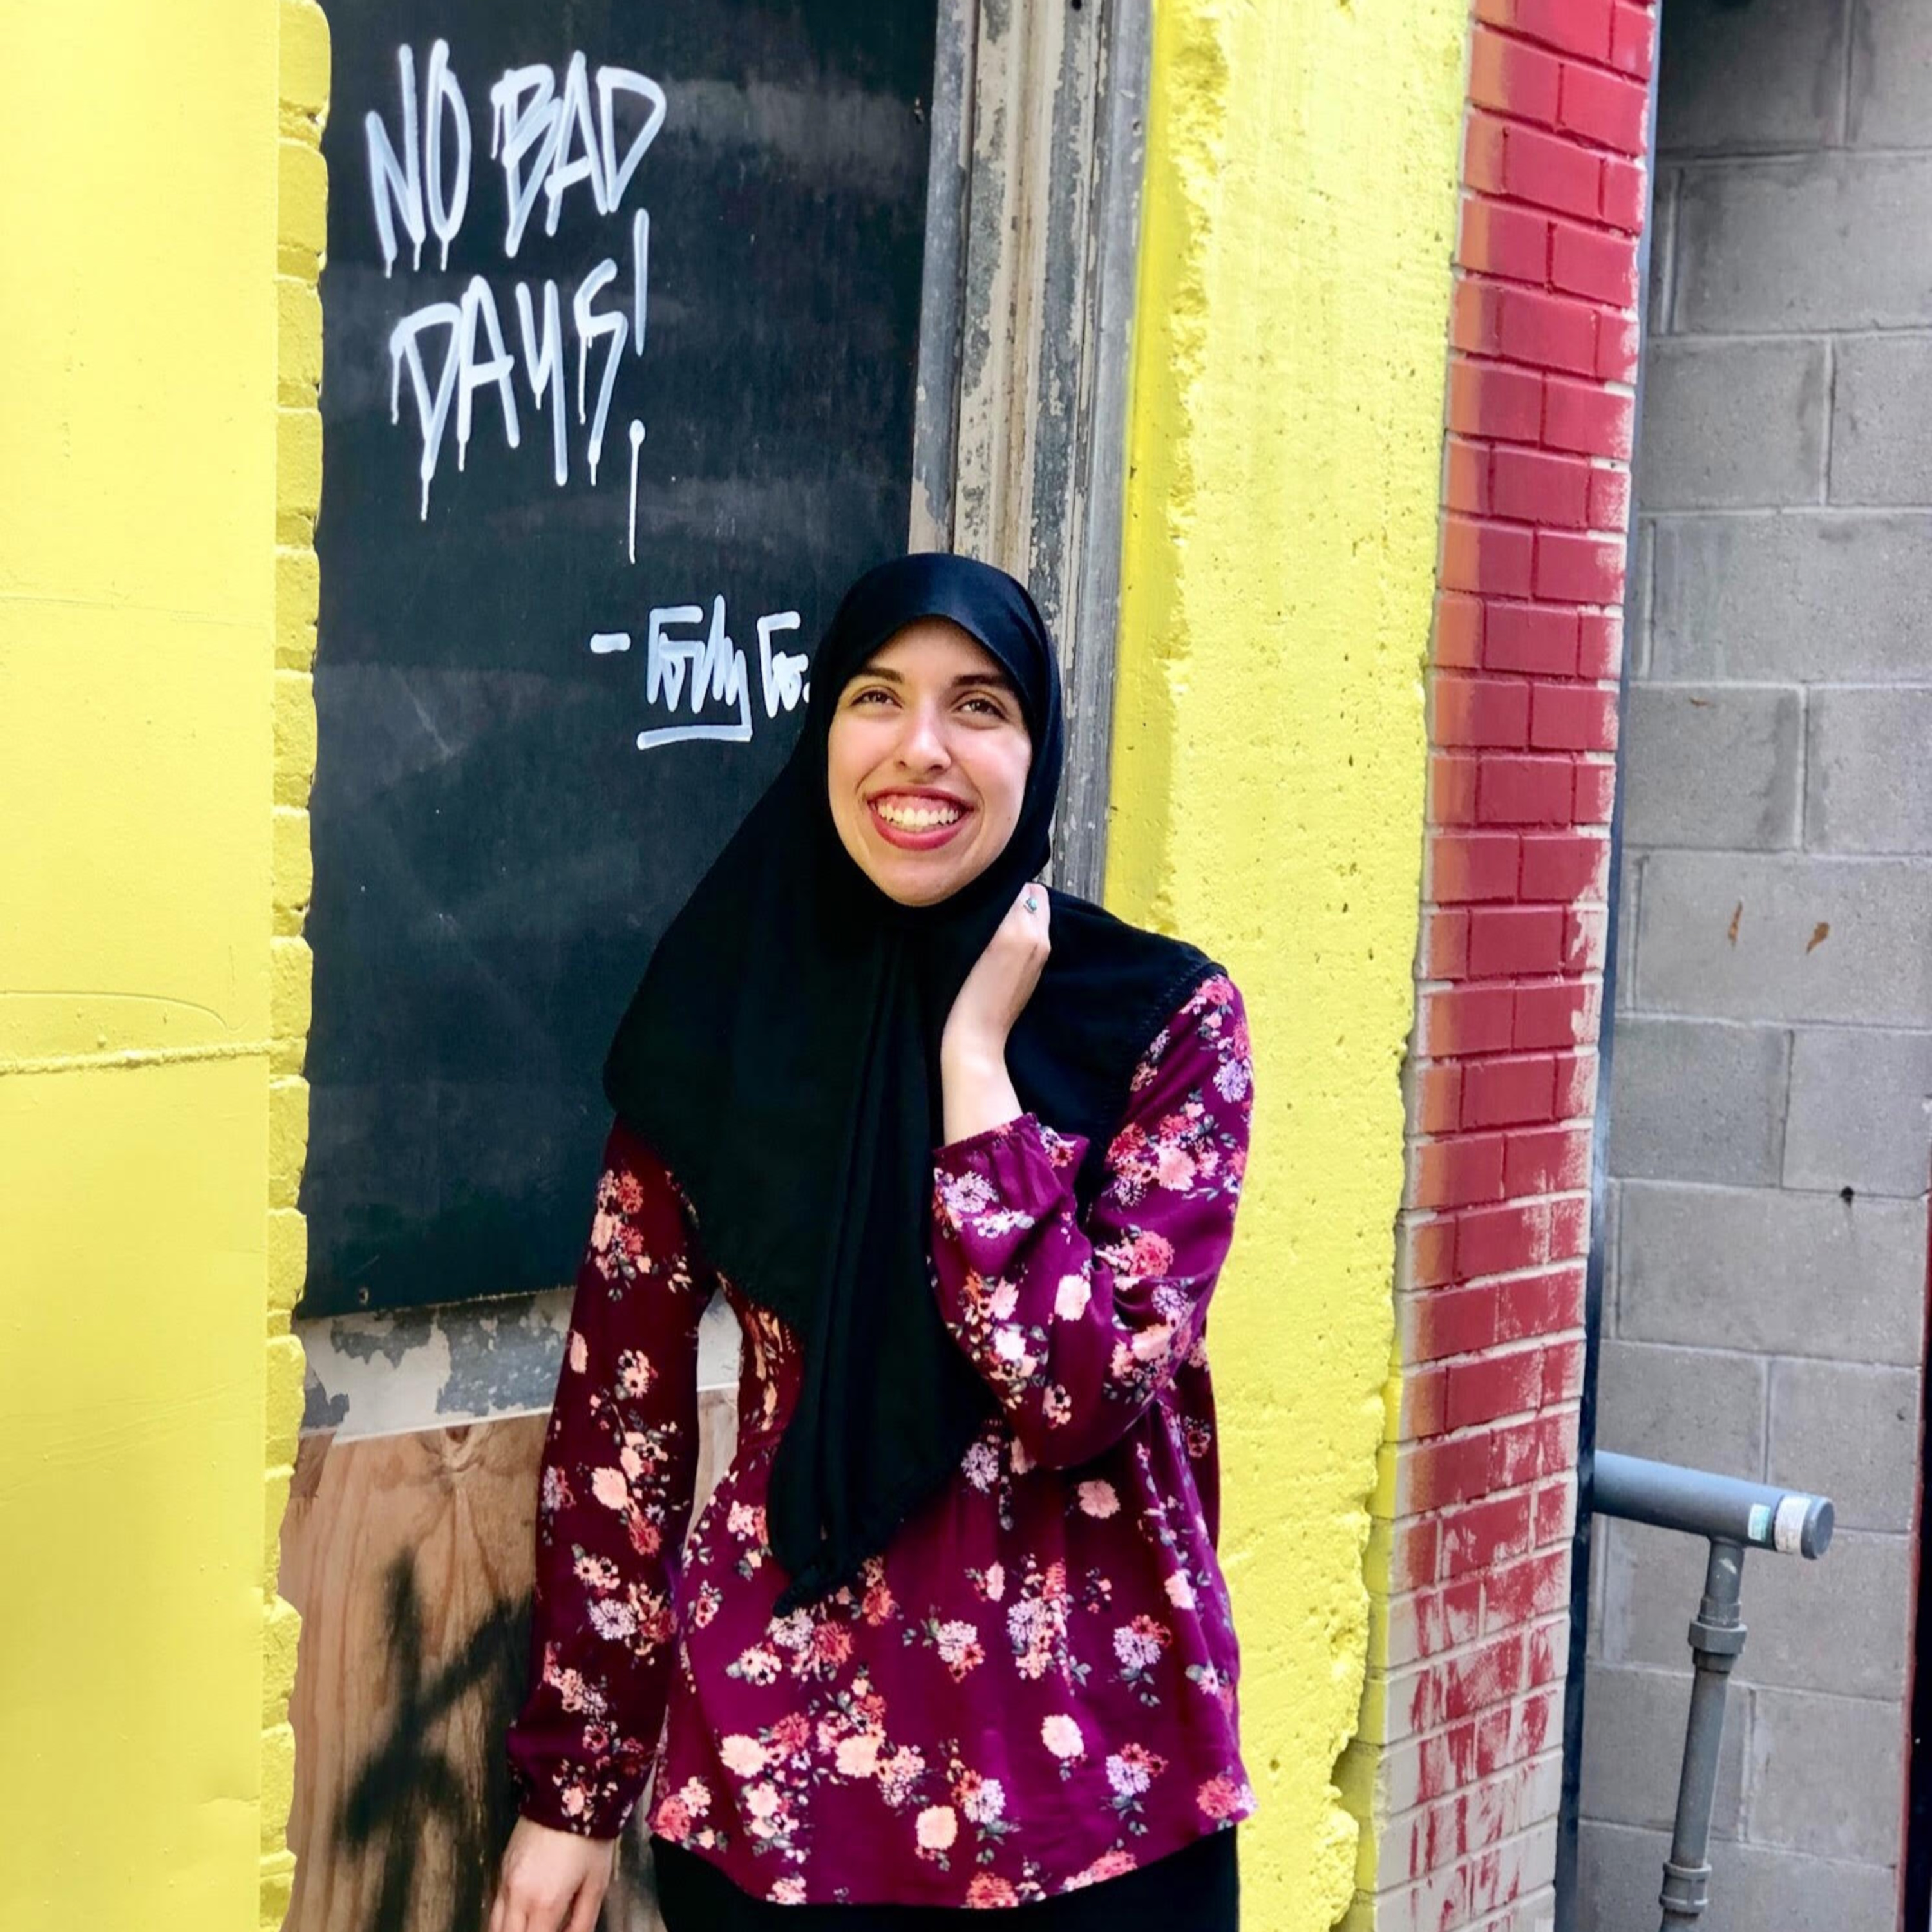 Mental Health Download: Exploring Mental Illness, Suicide, Homelessness and Incarceration - Tahira Taqi on Racism & Inclusion